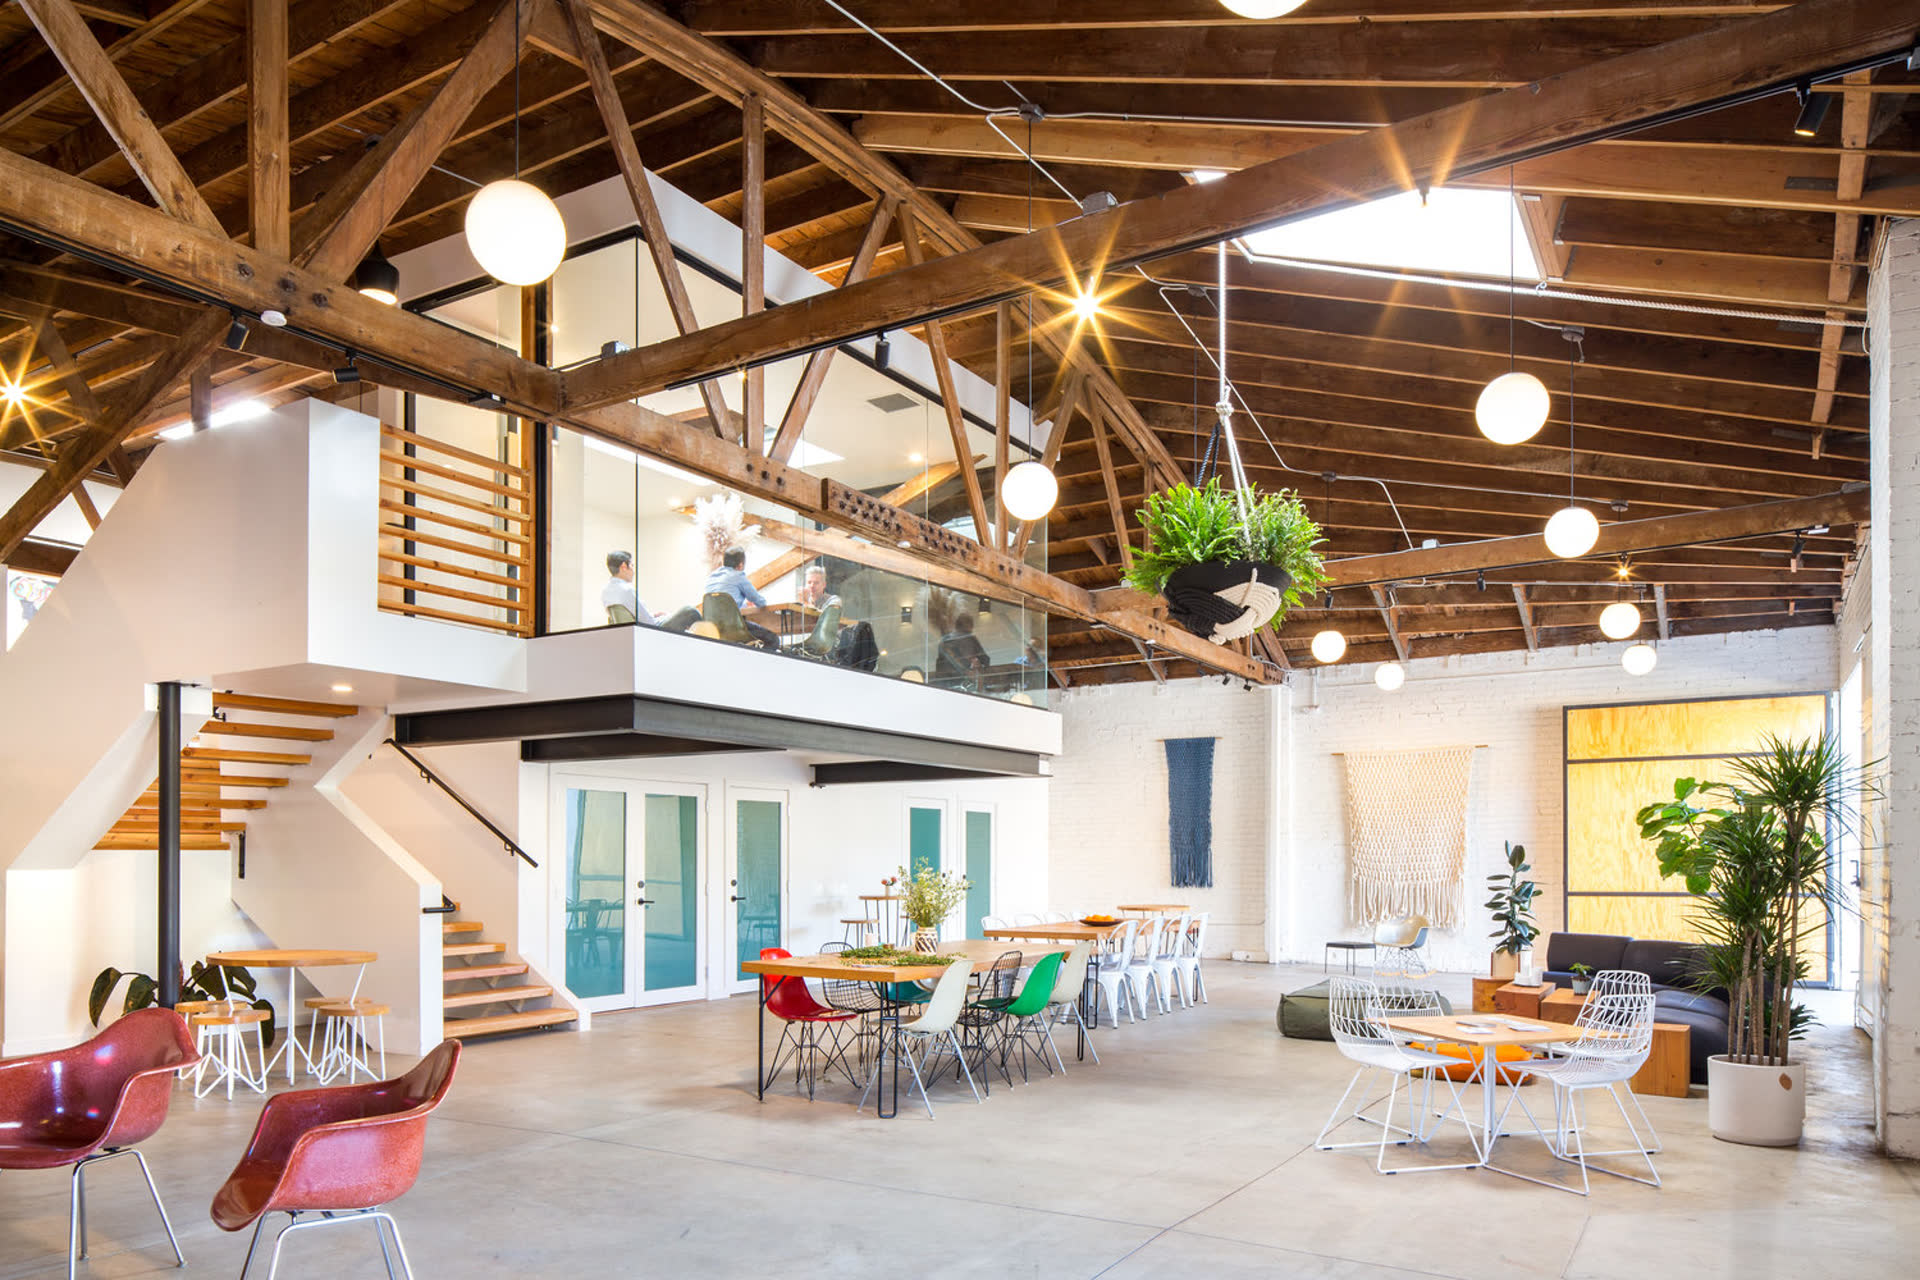 Office Party venues